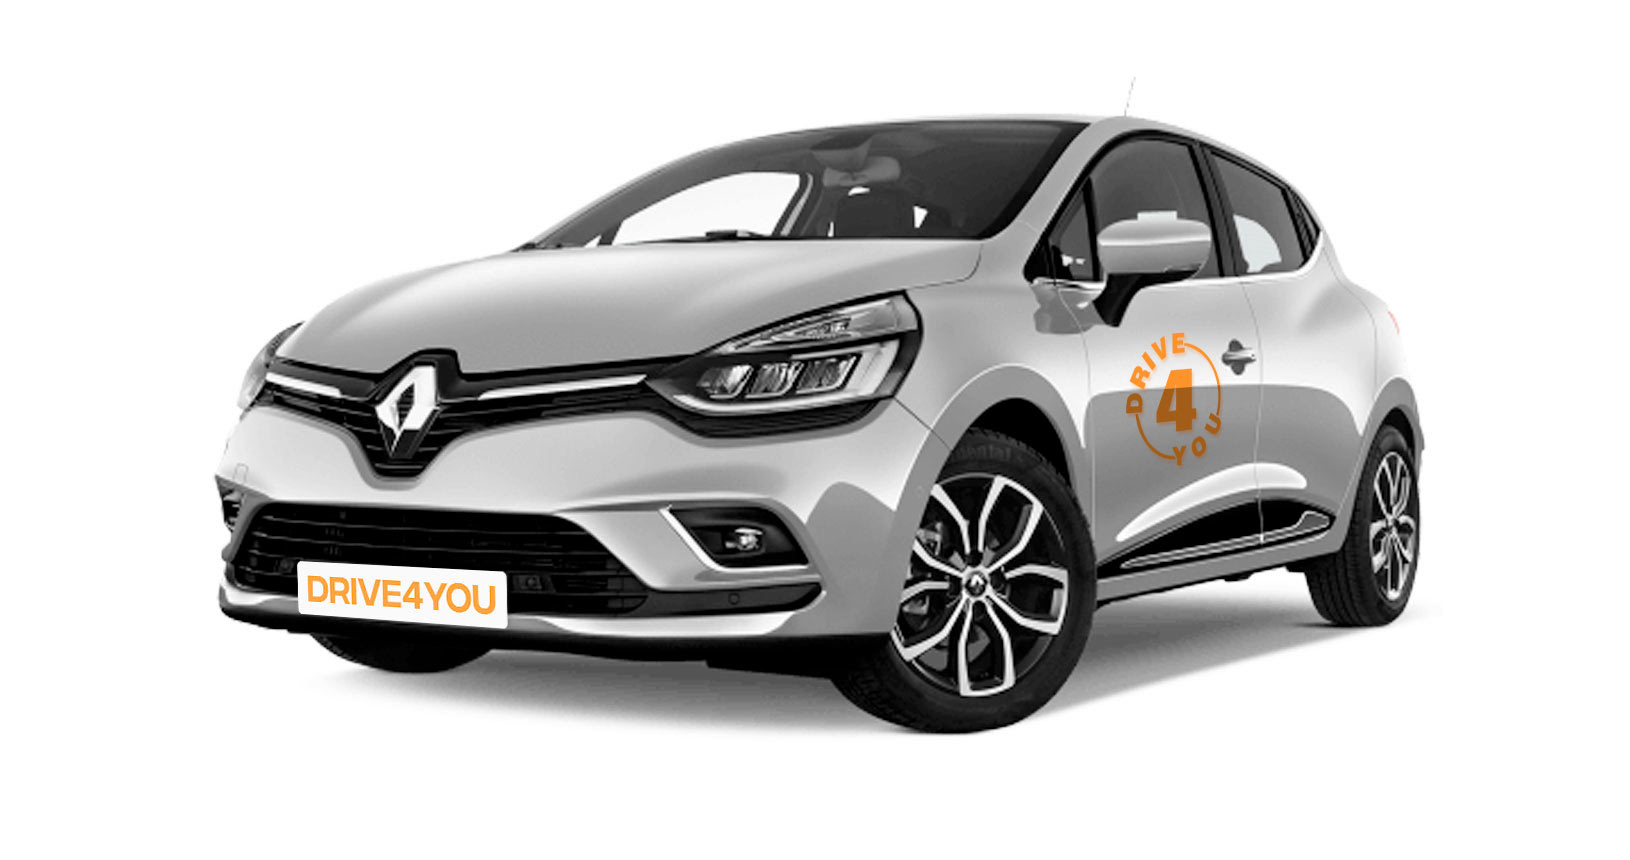 renault-clio-drive4you